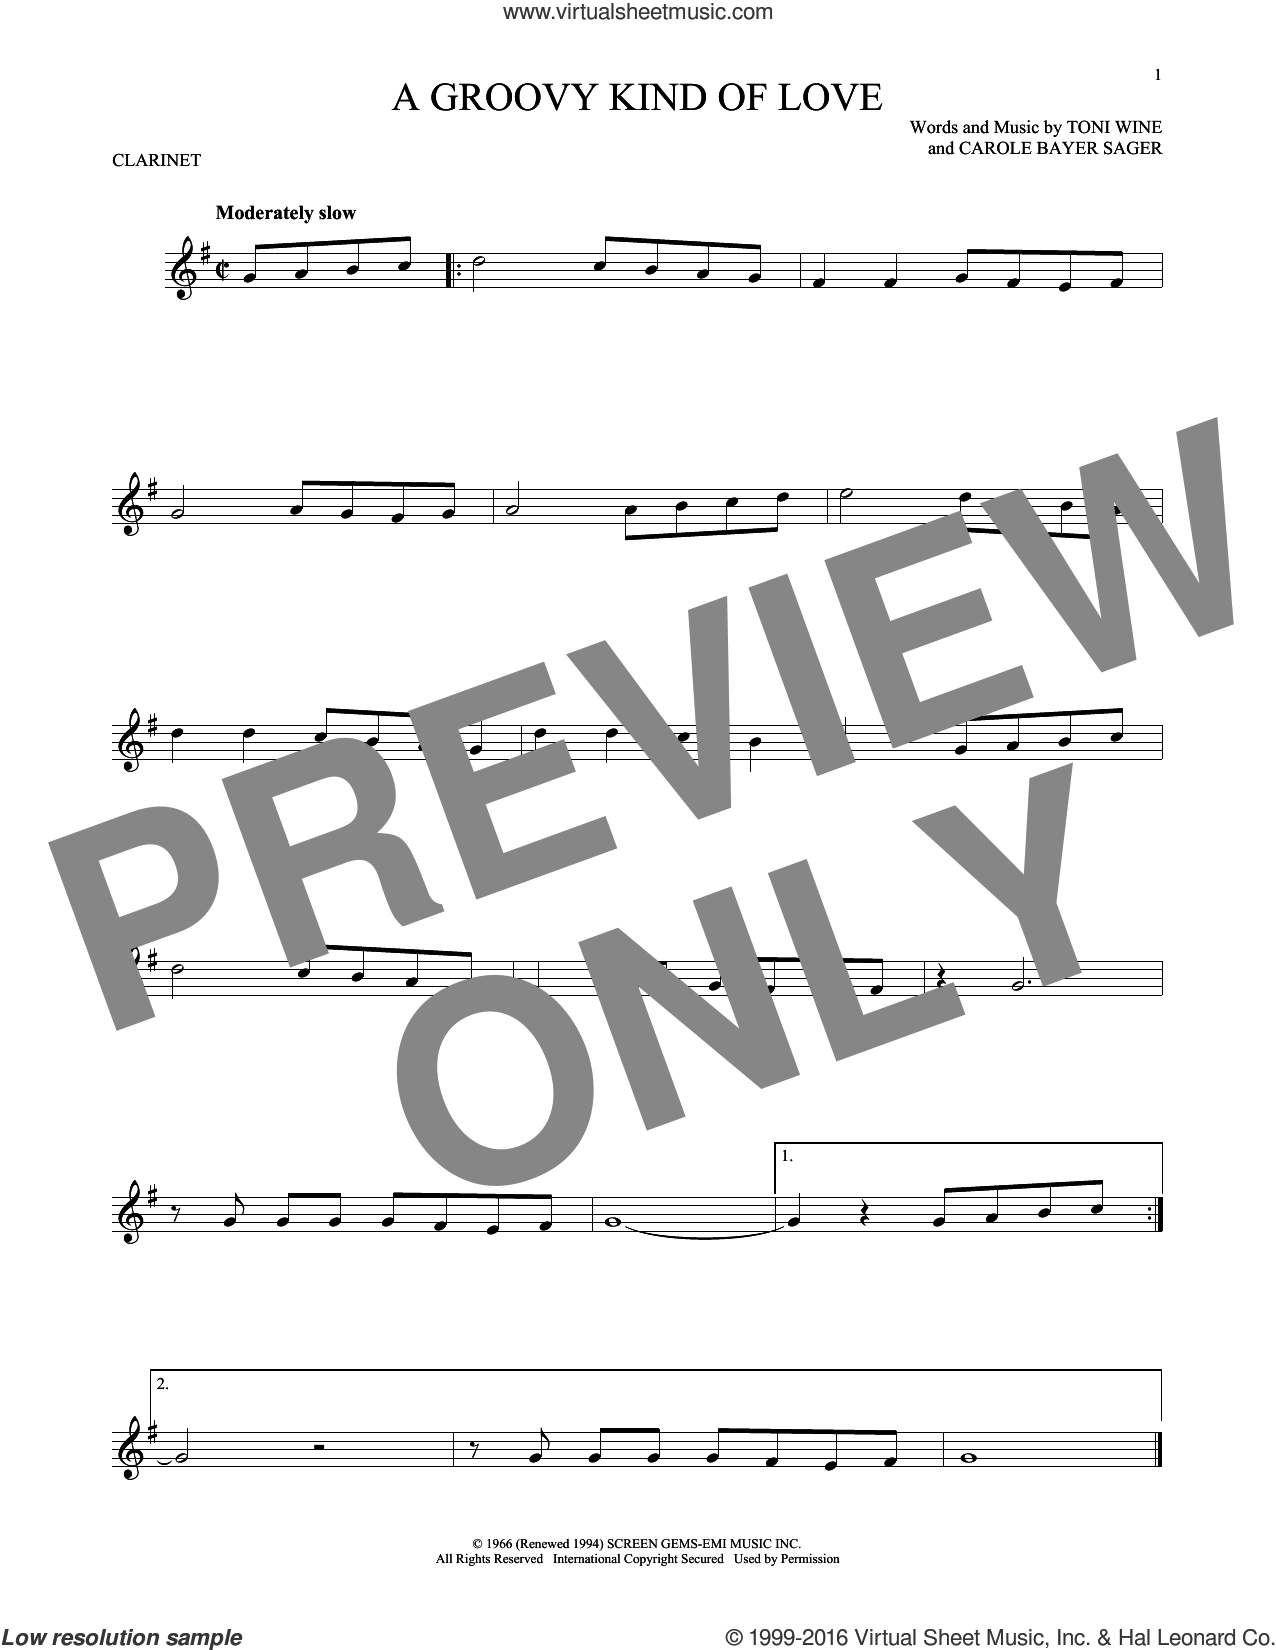 A Groovy Kind Of Love sheet music for clarinet solo by Toni Wine, Phil Collins and Carole Bayer Sager. Score Image Preview.